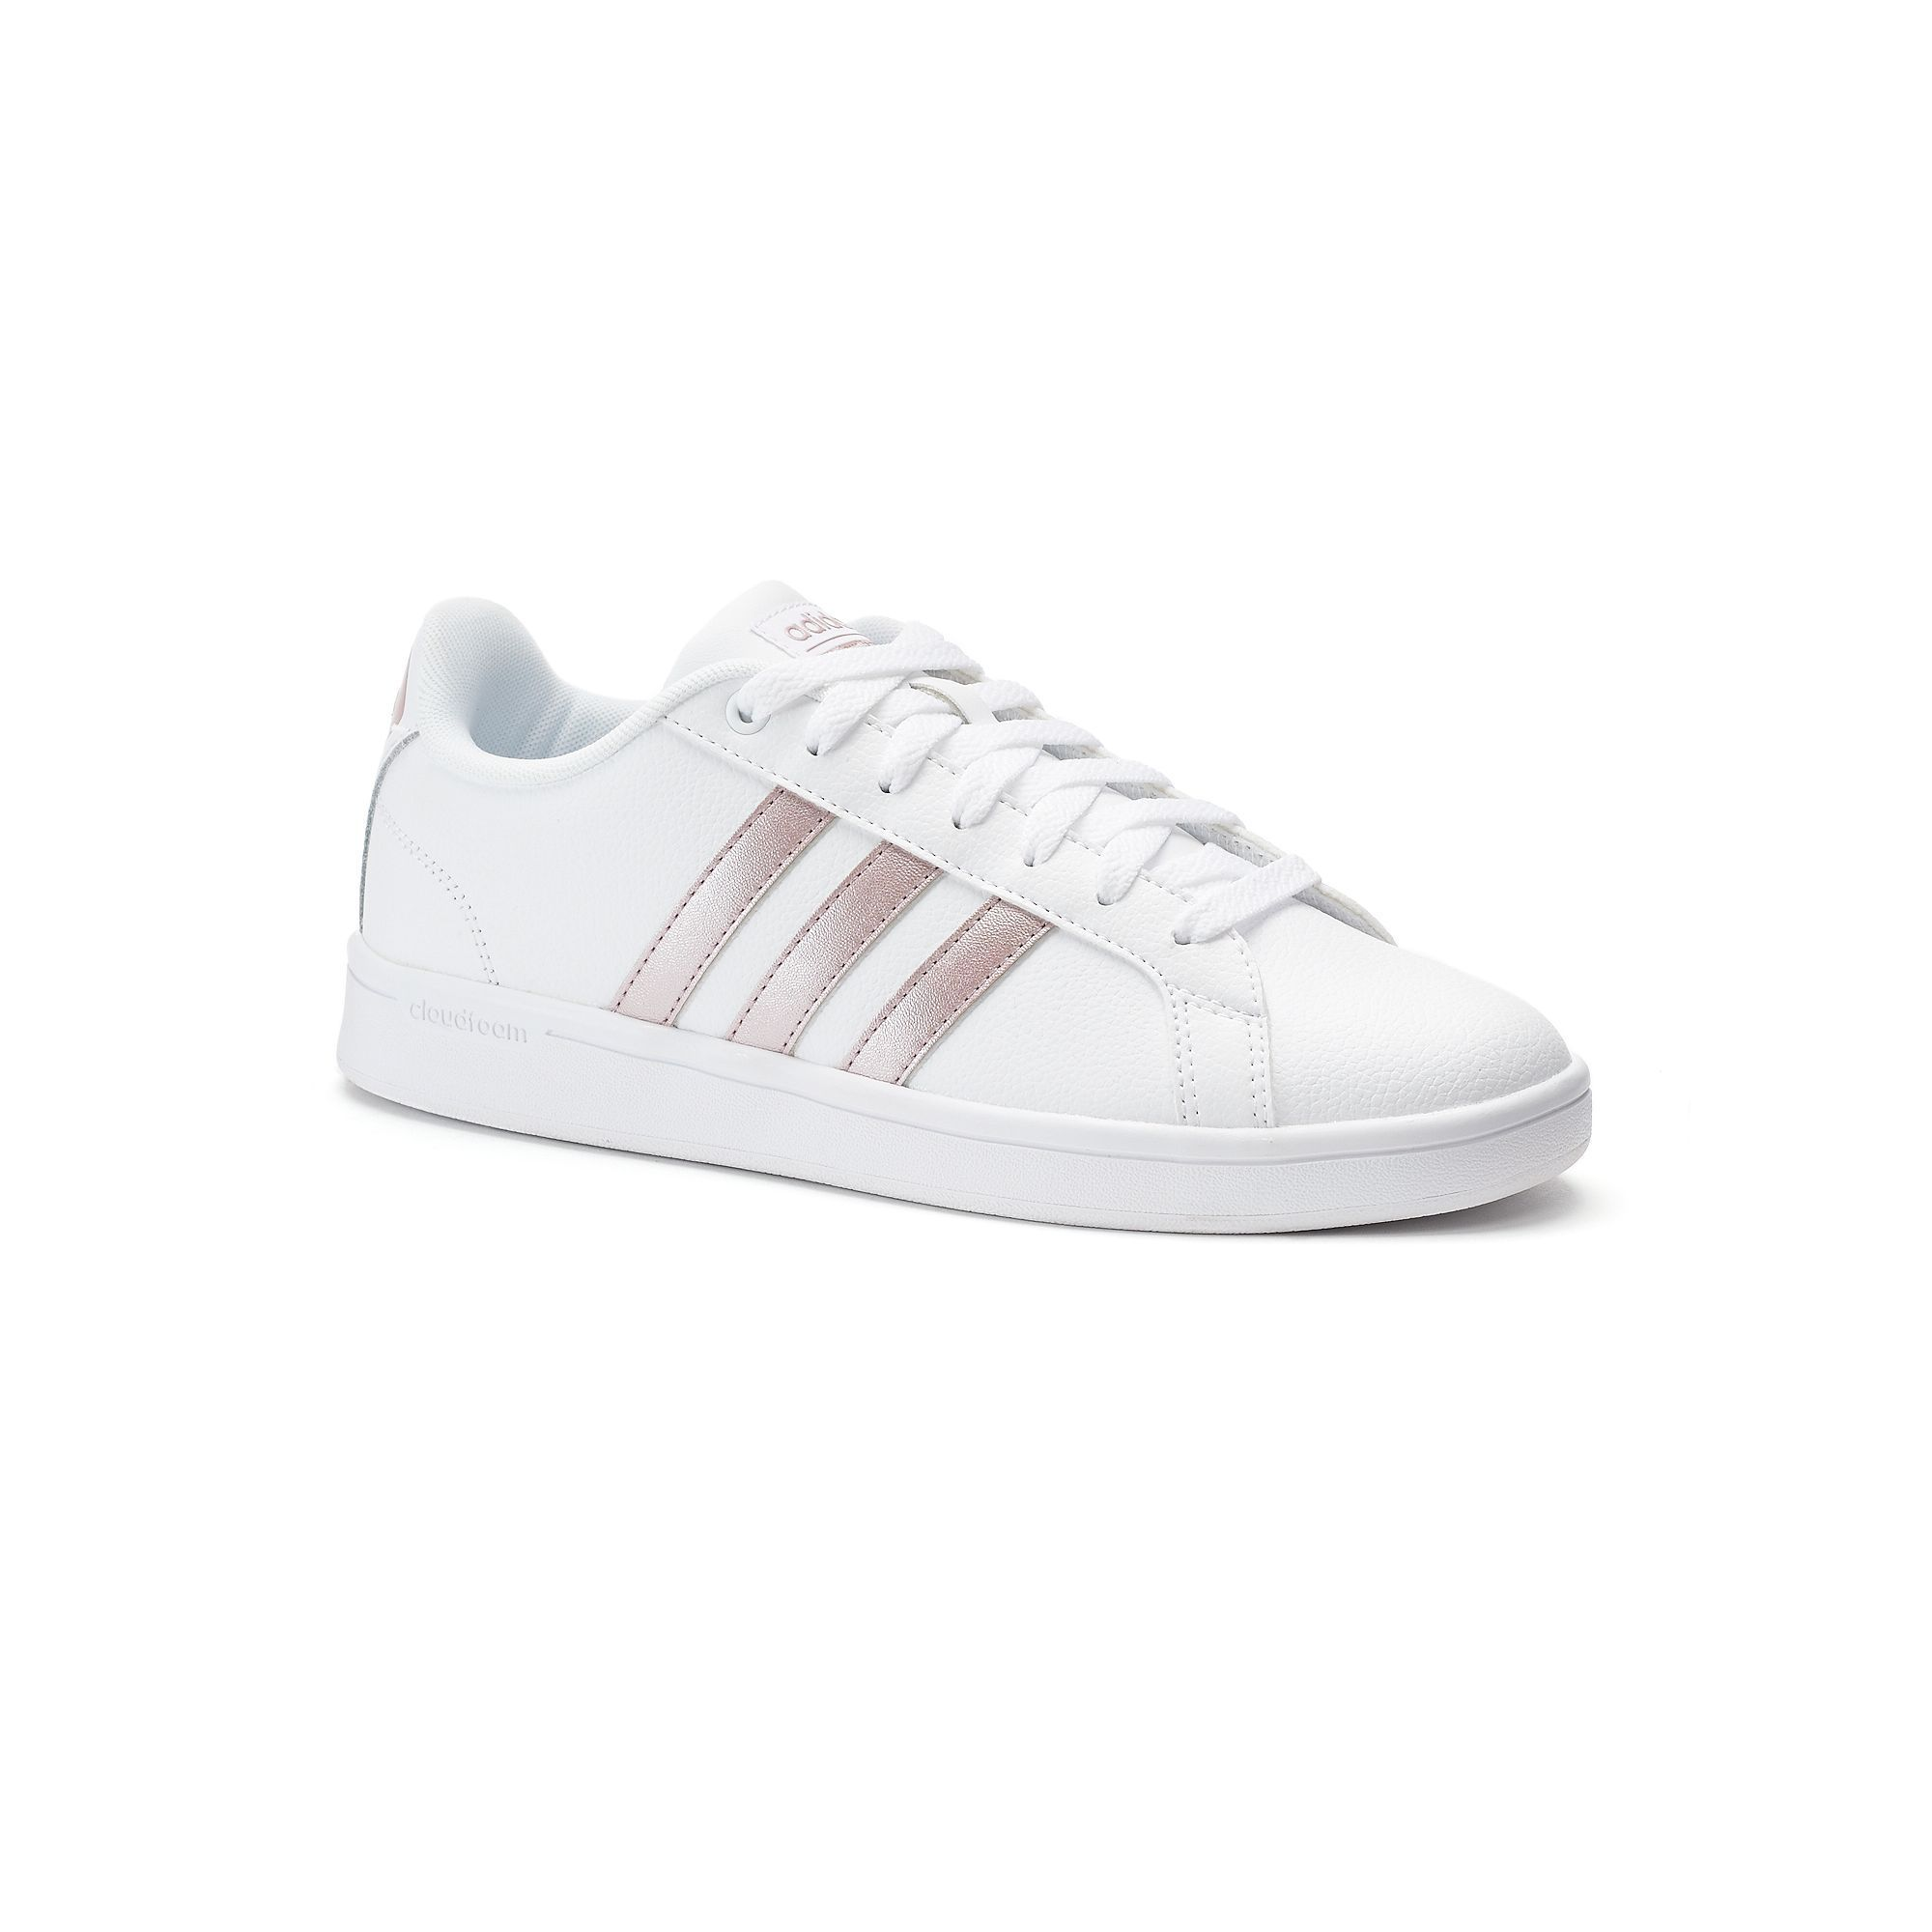 Adidas NEO Cloudfoam Advantage Stripe Women's Shoes, White